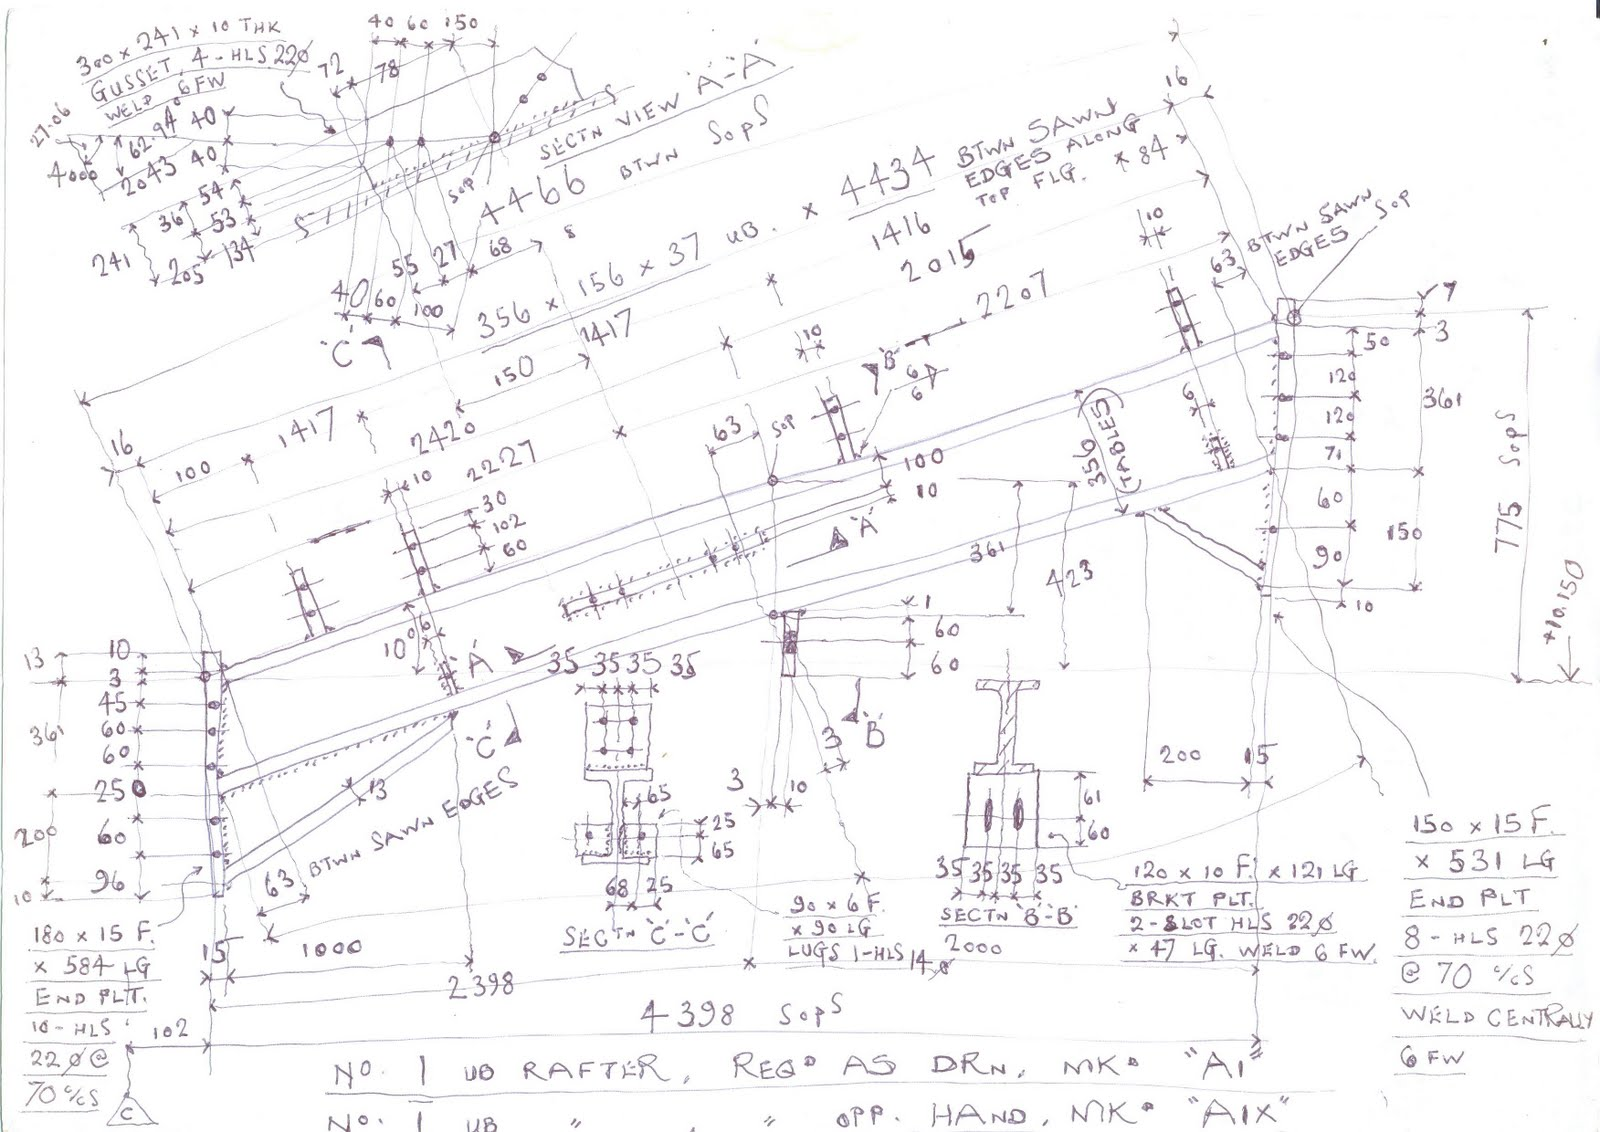 eight-one-one-seven: STEELWORK DETAIL DRAFTSMAN - 1978 - 2001